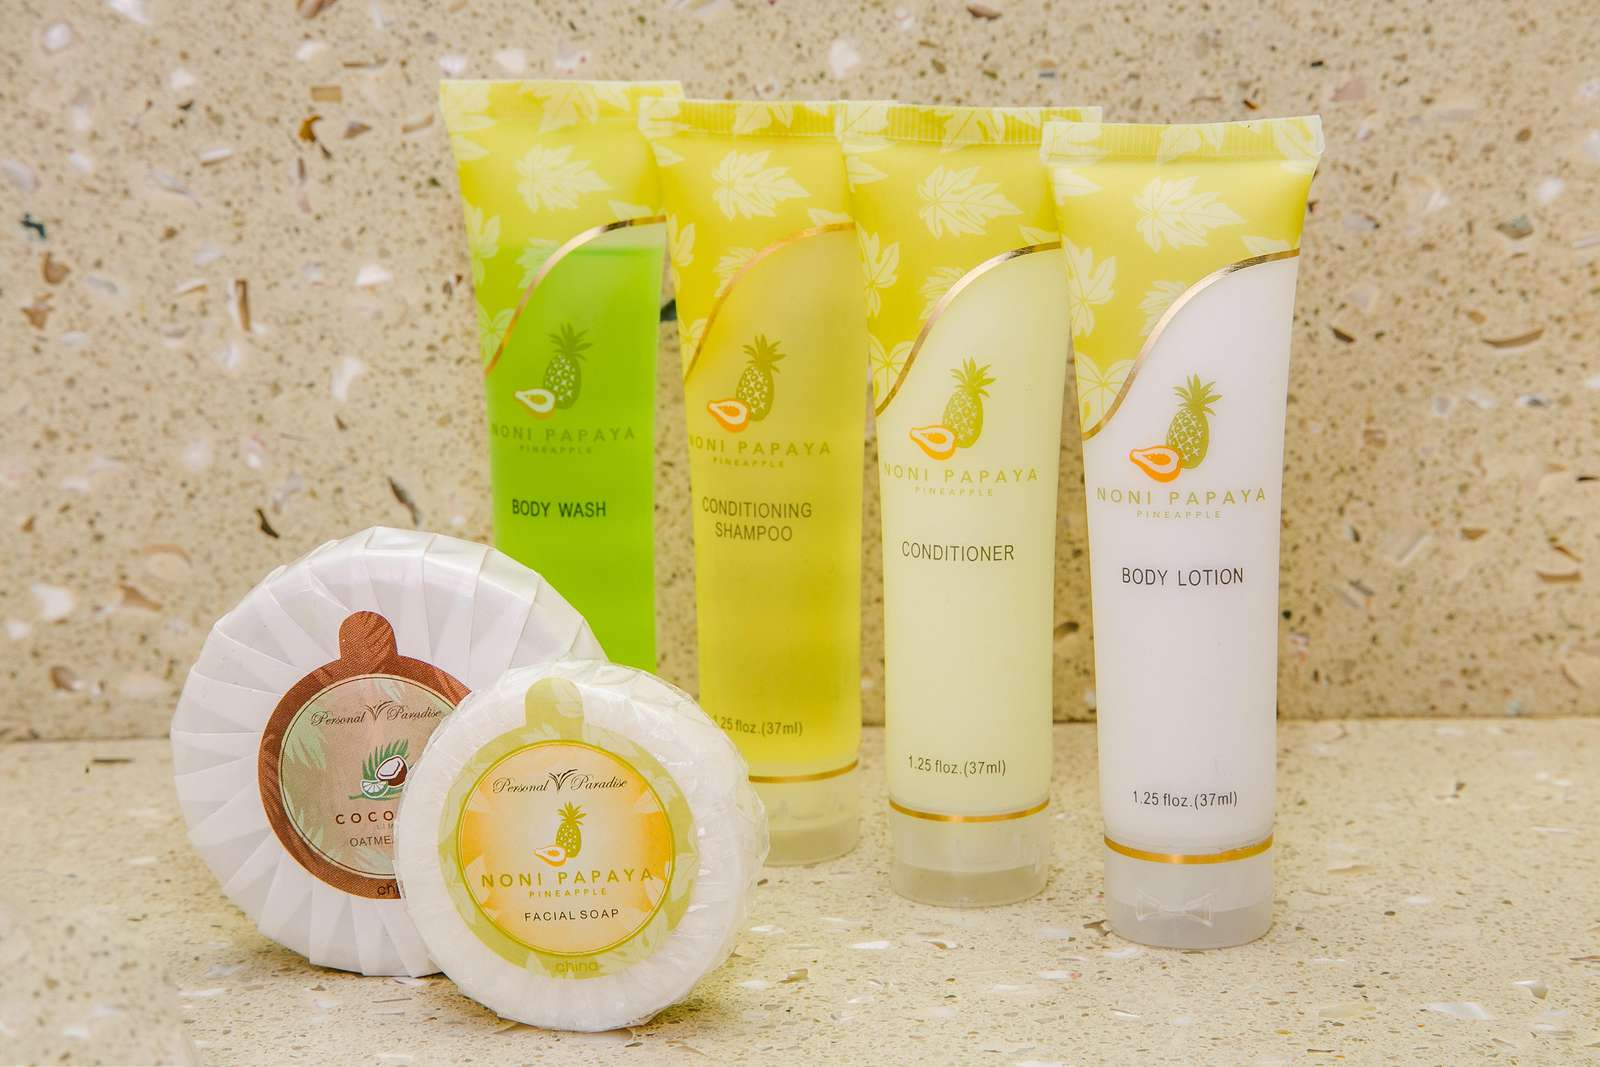 first couple of days supply soaps & shampoo